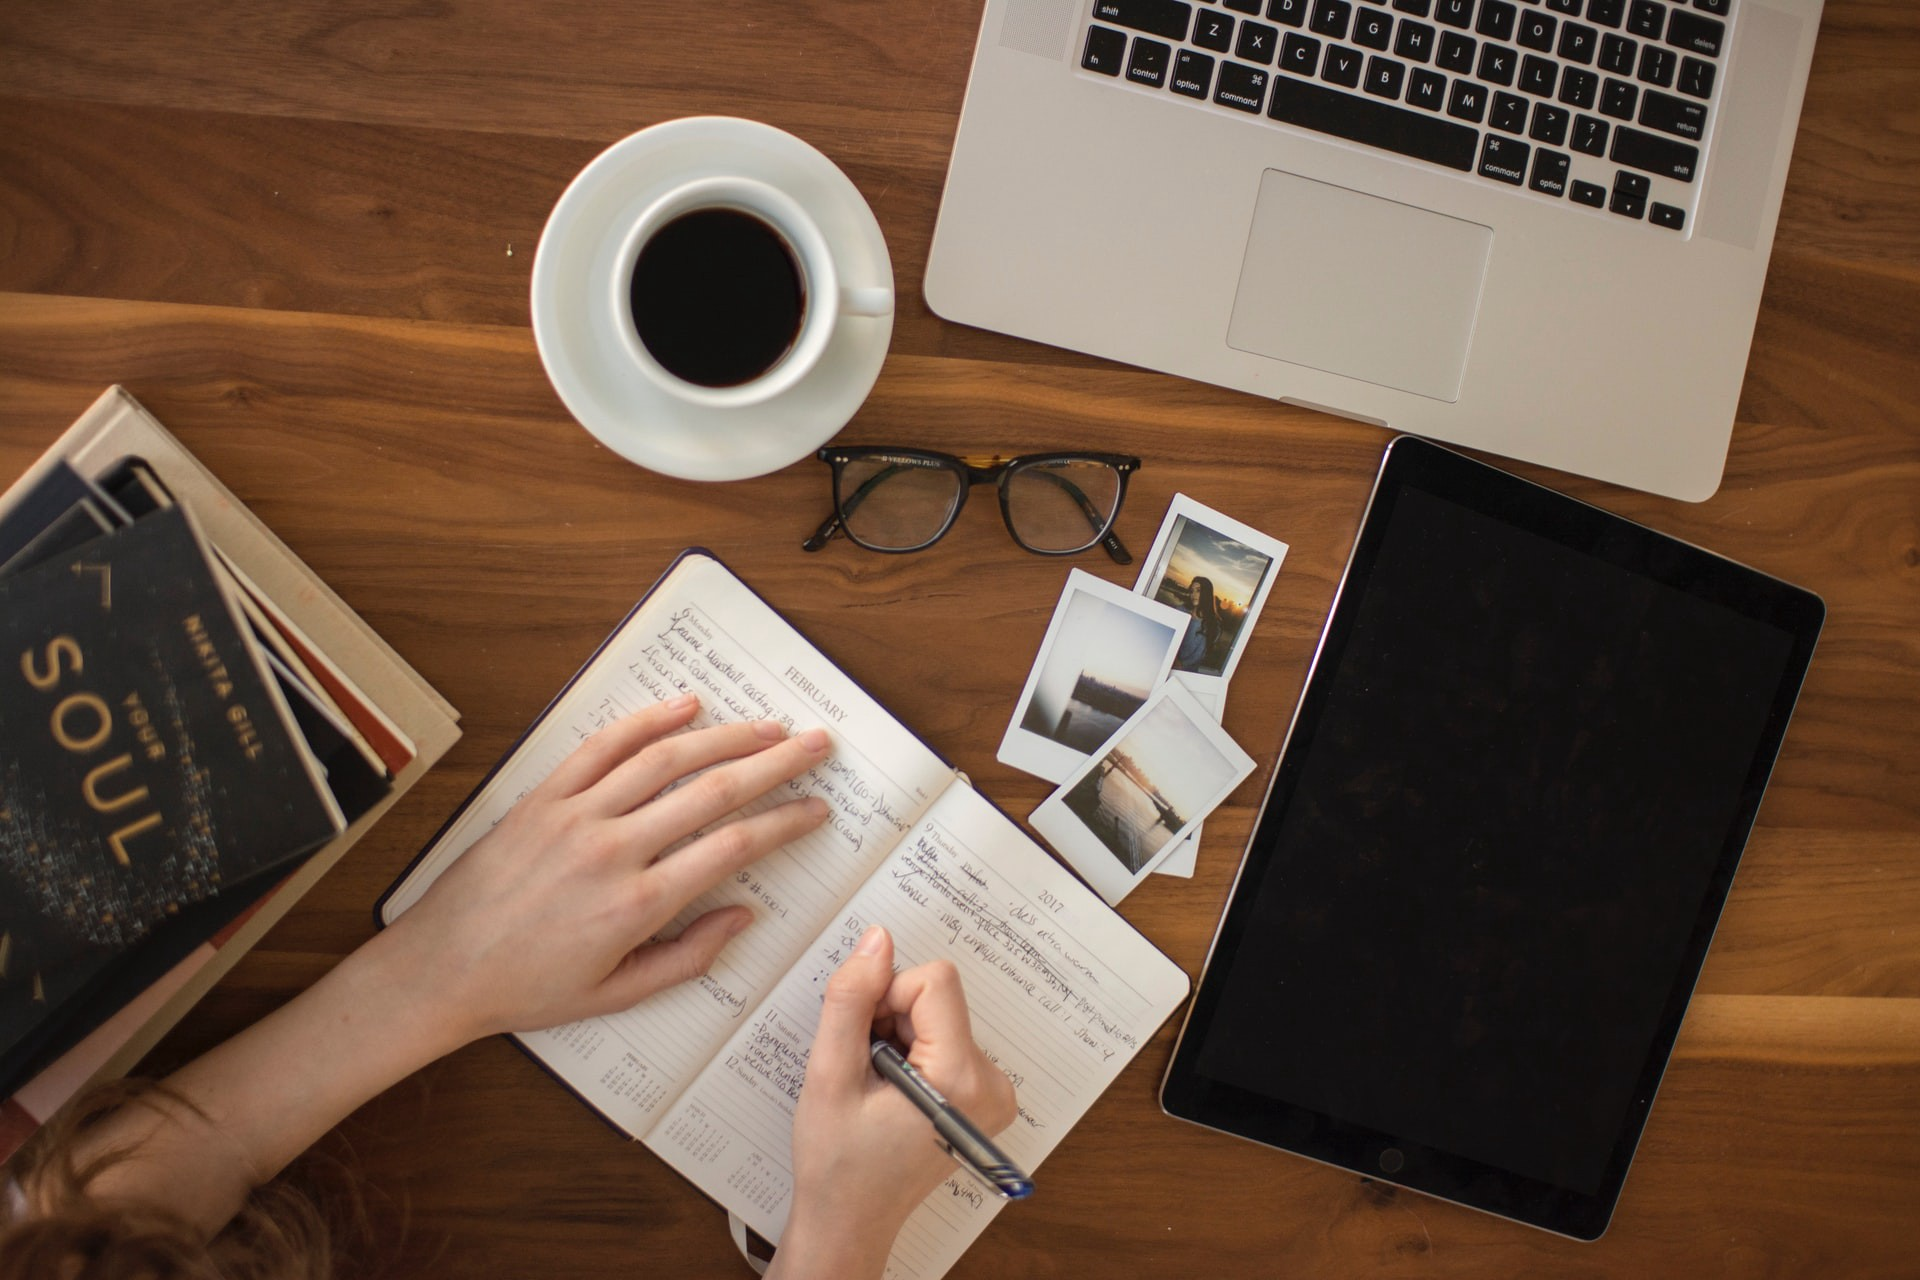 A person writing in a notebook. A book, another black notebook, coffee cup, spectacle and macbook keyboard is visible.